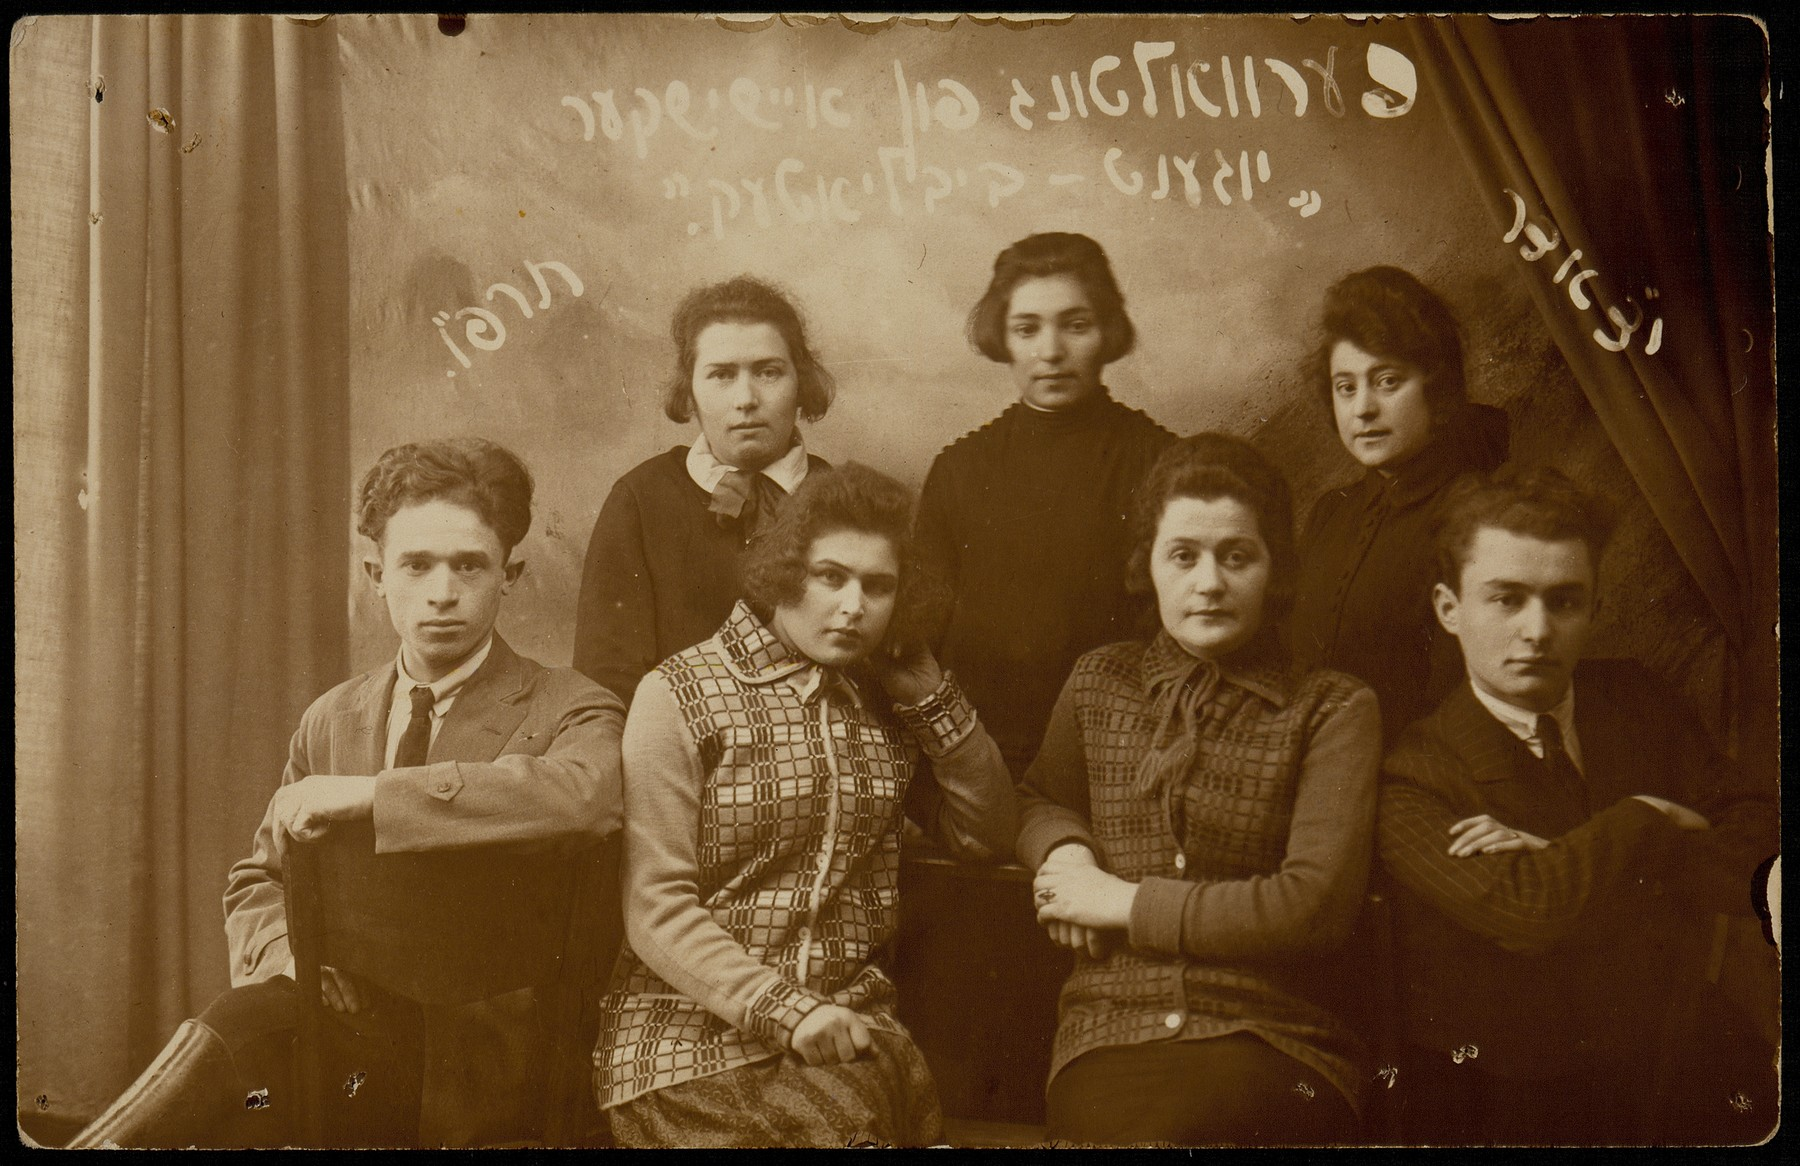 "The Young Library Society in Eisiskes.   Standing from right to left: Feigele (Fanichke) Saltz, Ettl Glombocki, Bat-Sheva Rozowski.  Sitting right to left: Peretz Kaleko, Hannah Koppelman, Shoshana (Shoshke) Yurkanski, unknown. The photo was inscribed in Yiddish, "" To my dear loving sister from Hanka.  1926.""    Feigele (Fanichke) Saltz immigrated to the United States, and Peretz Kaleko immigrated to Palestine.  Ettl Glombocki Gunzberg survived the Holocaust in the Soviet Union.  Shoshana (Shoshke) was murdered by a Russian partisan.  Bat-Sheva Rozowski was mudered in Treblinka.  Hannah Koppelman also perished during the Holocaust."